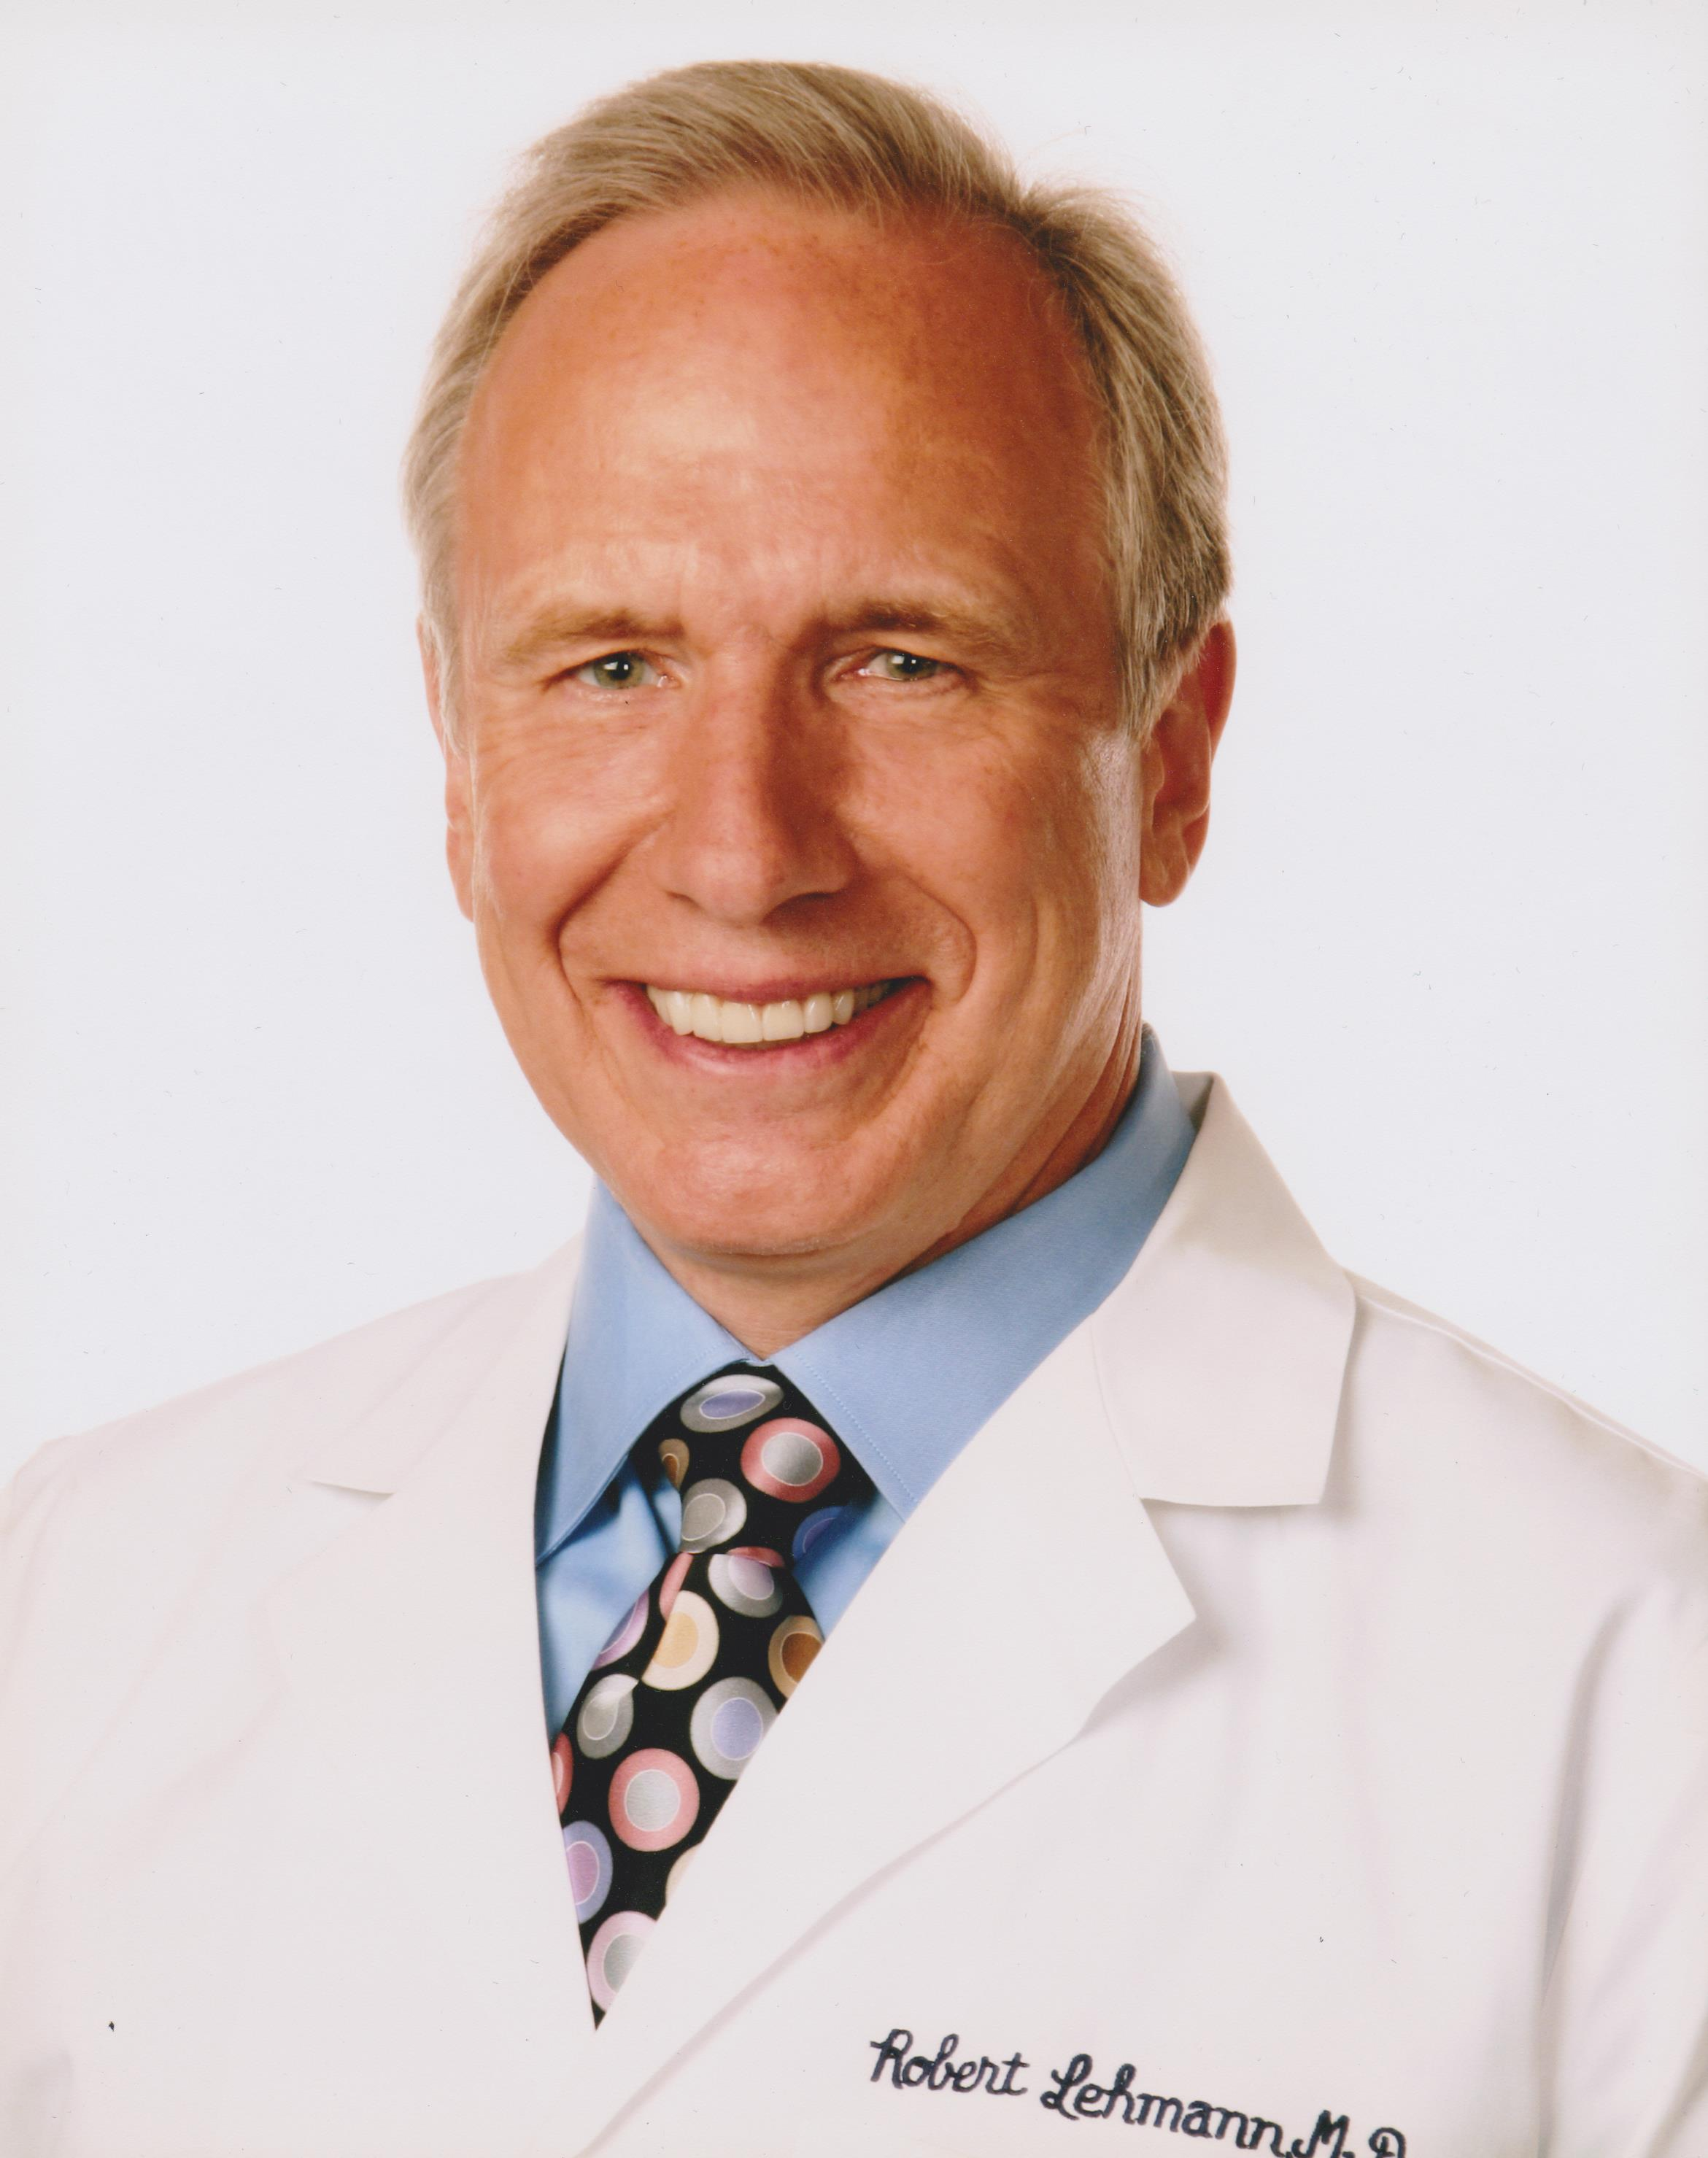 Dr. Robert Lehmann, Lehmann Eye Center